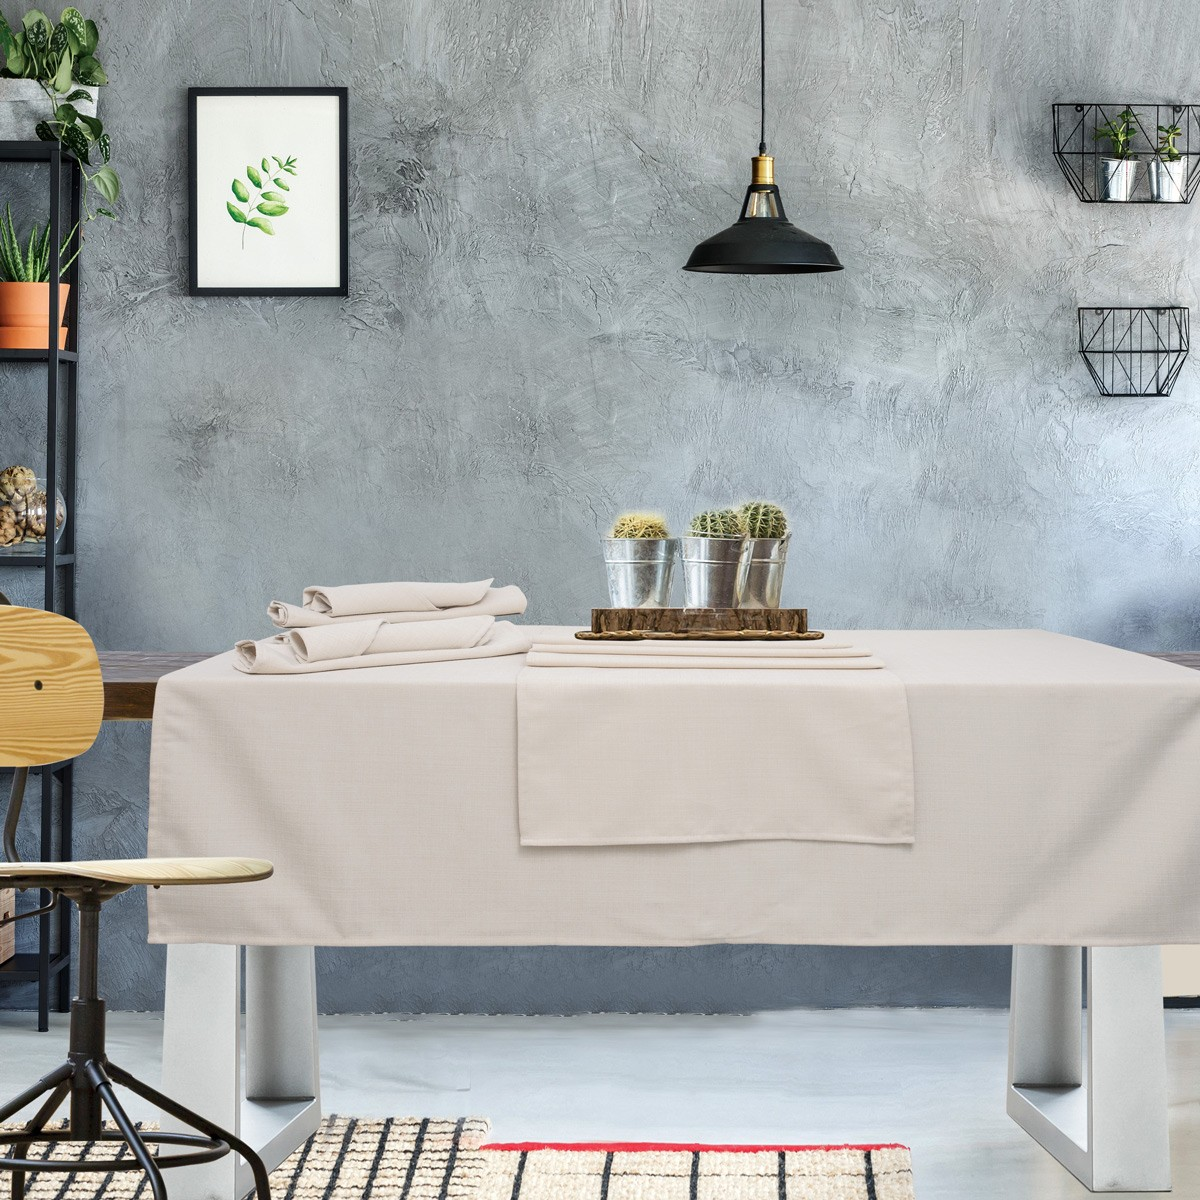 Τραβέρσα Das Home Kitchen Line 544